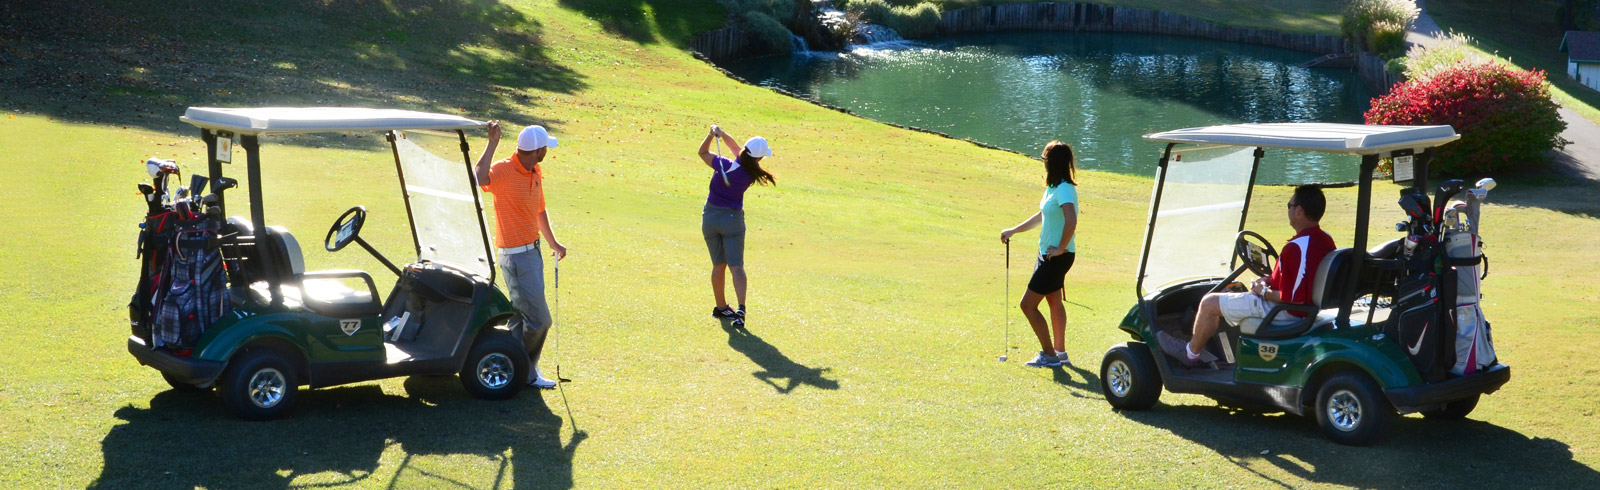 Tee Off Faster With Online Lake of the Ozarks Tee Times